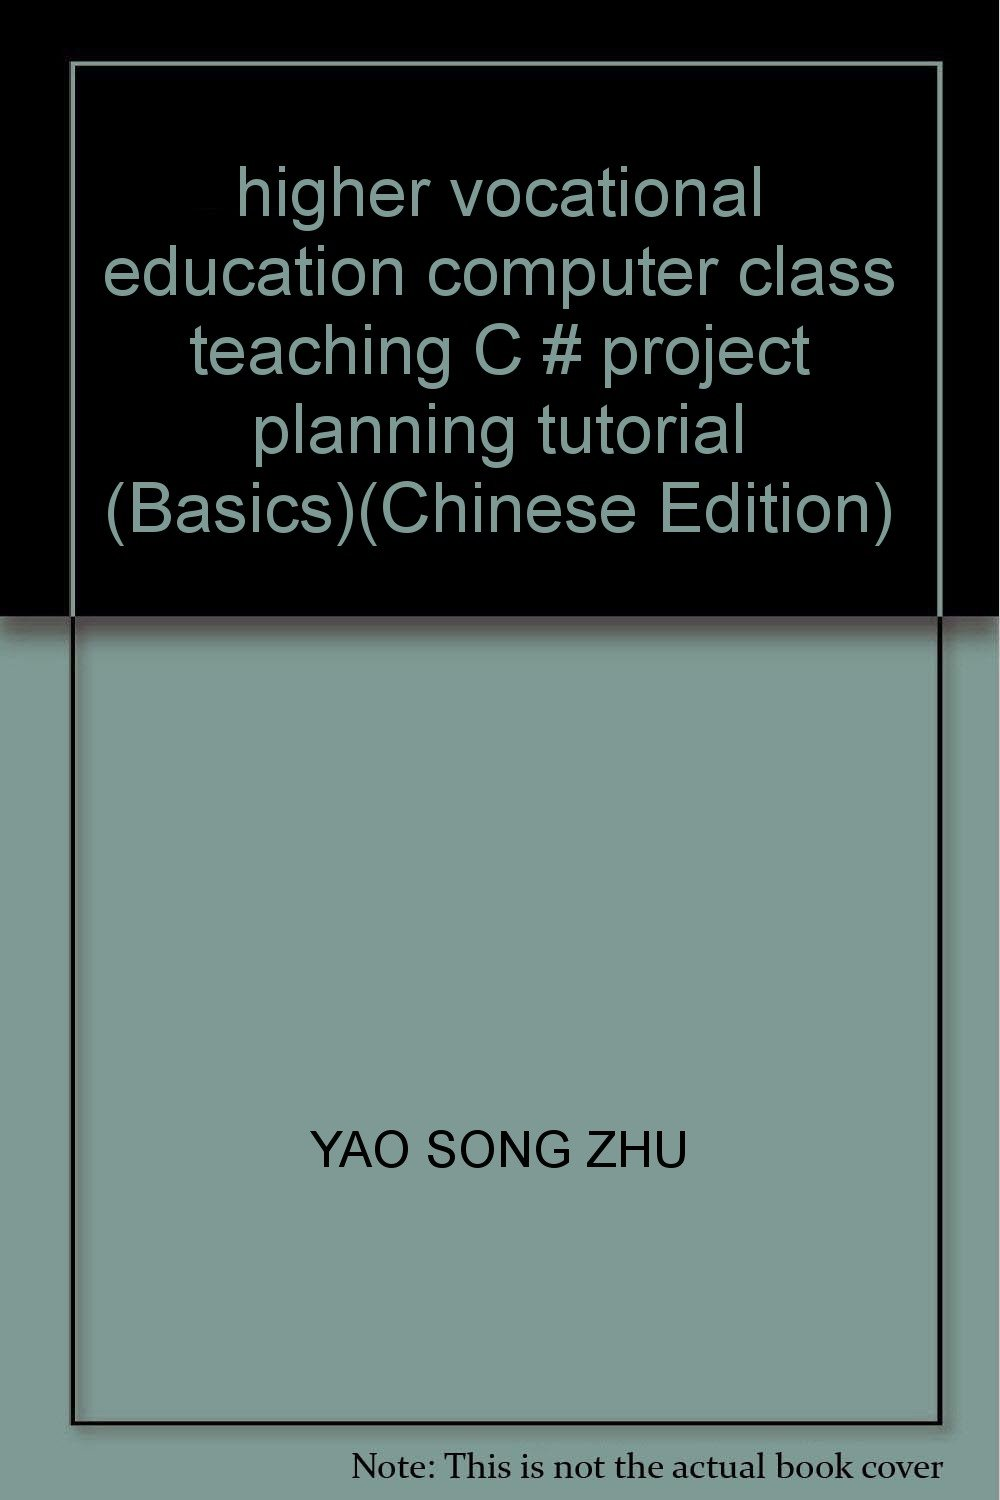 higher vocational education computer class teaching C # project planning tutorial (Basics)(Chinese Edition) PDF